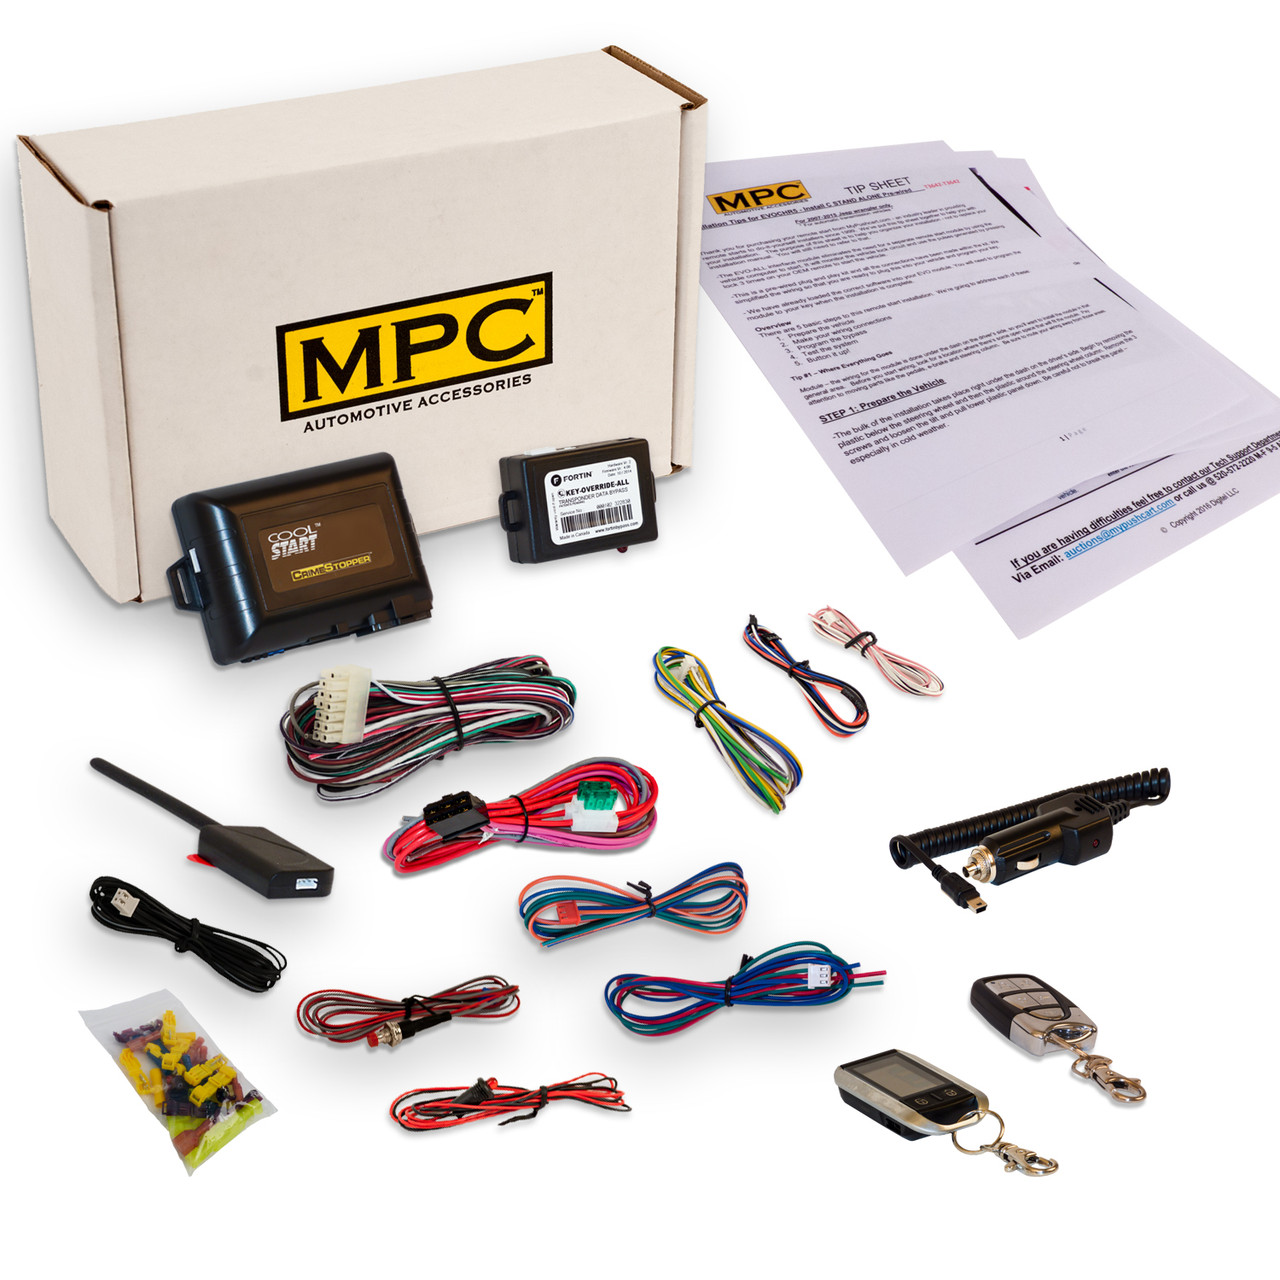 MPC Mercury Sable 1996-1999 Complete 2 Way LCD Remote Start - Keyless Entry Kit